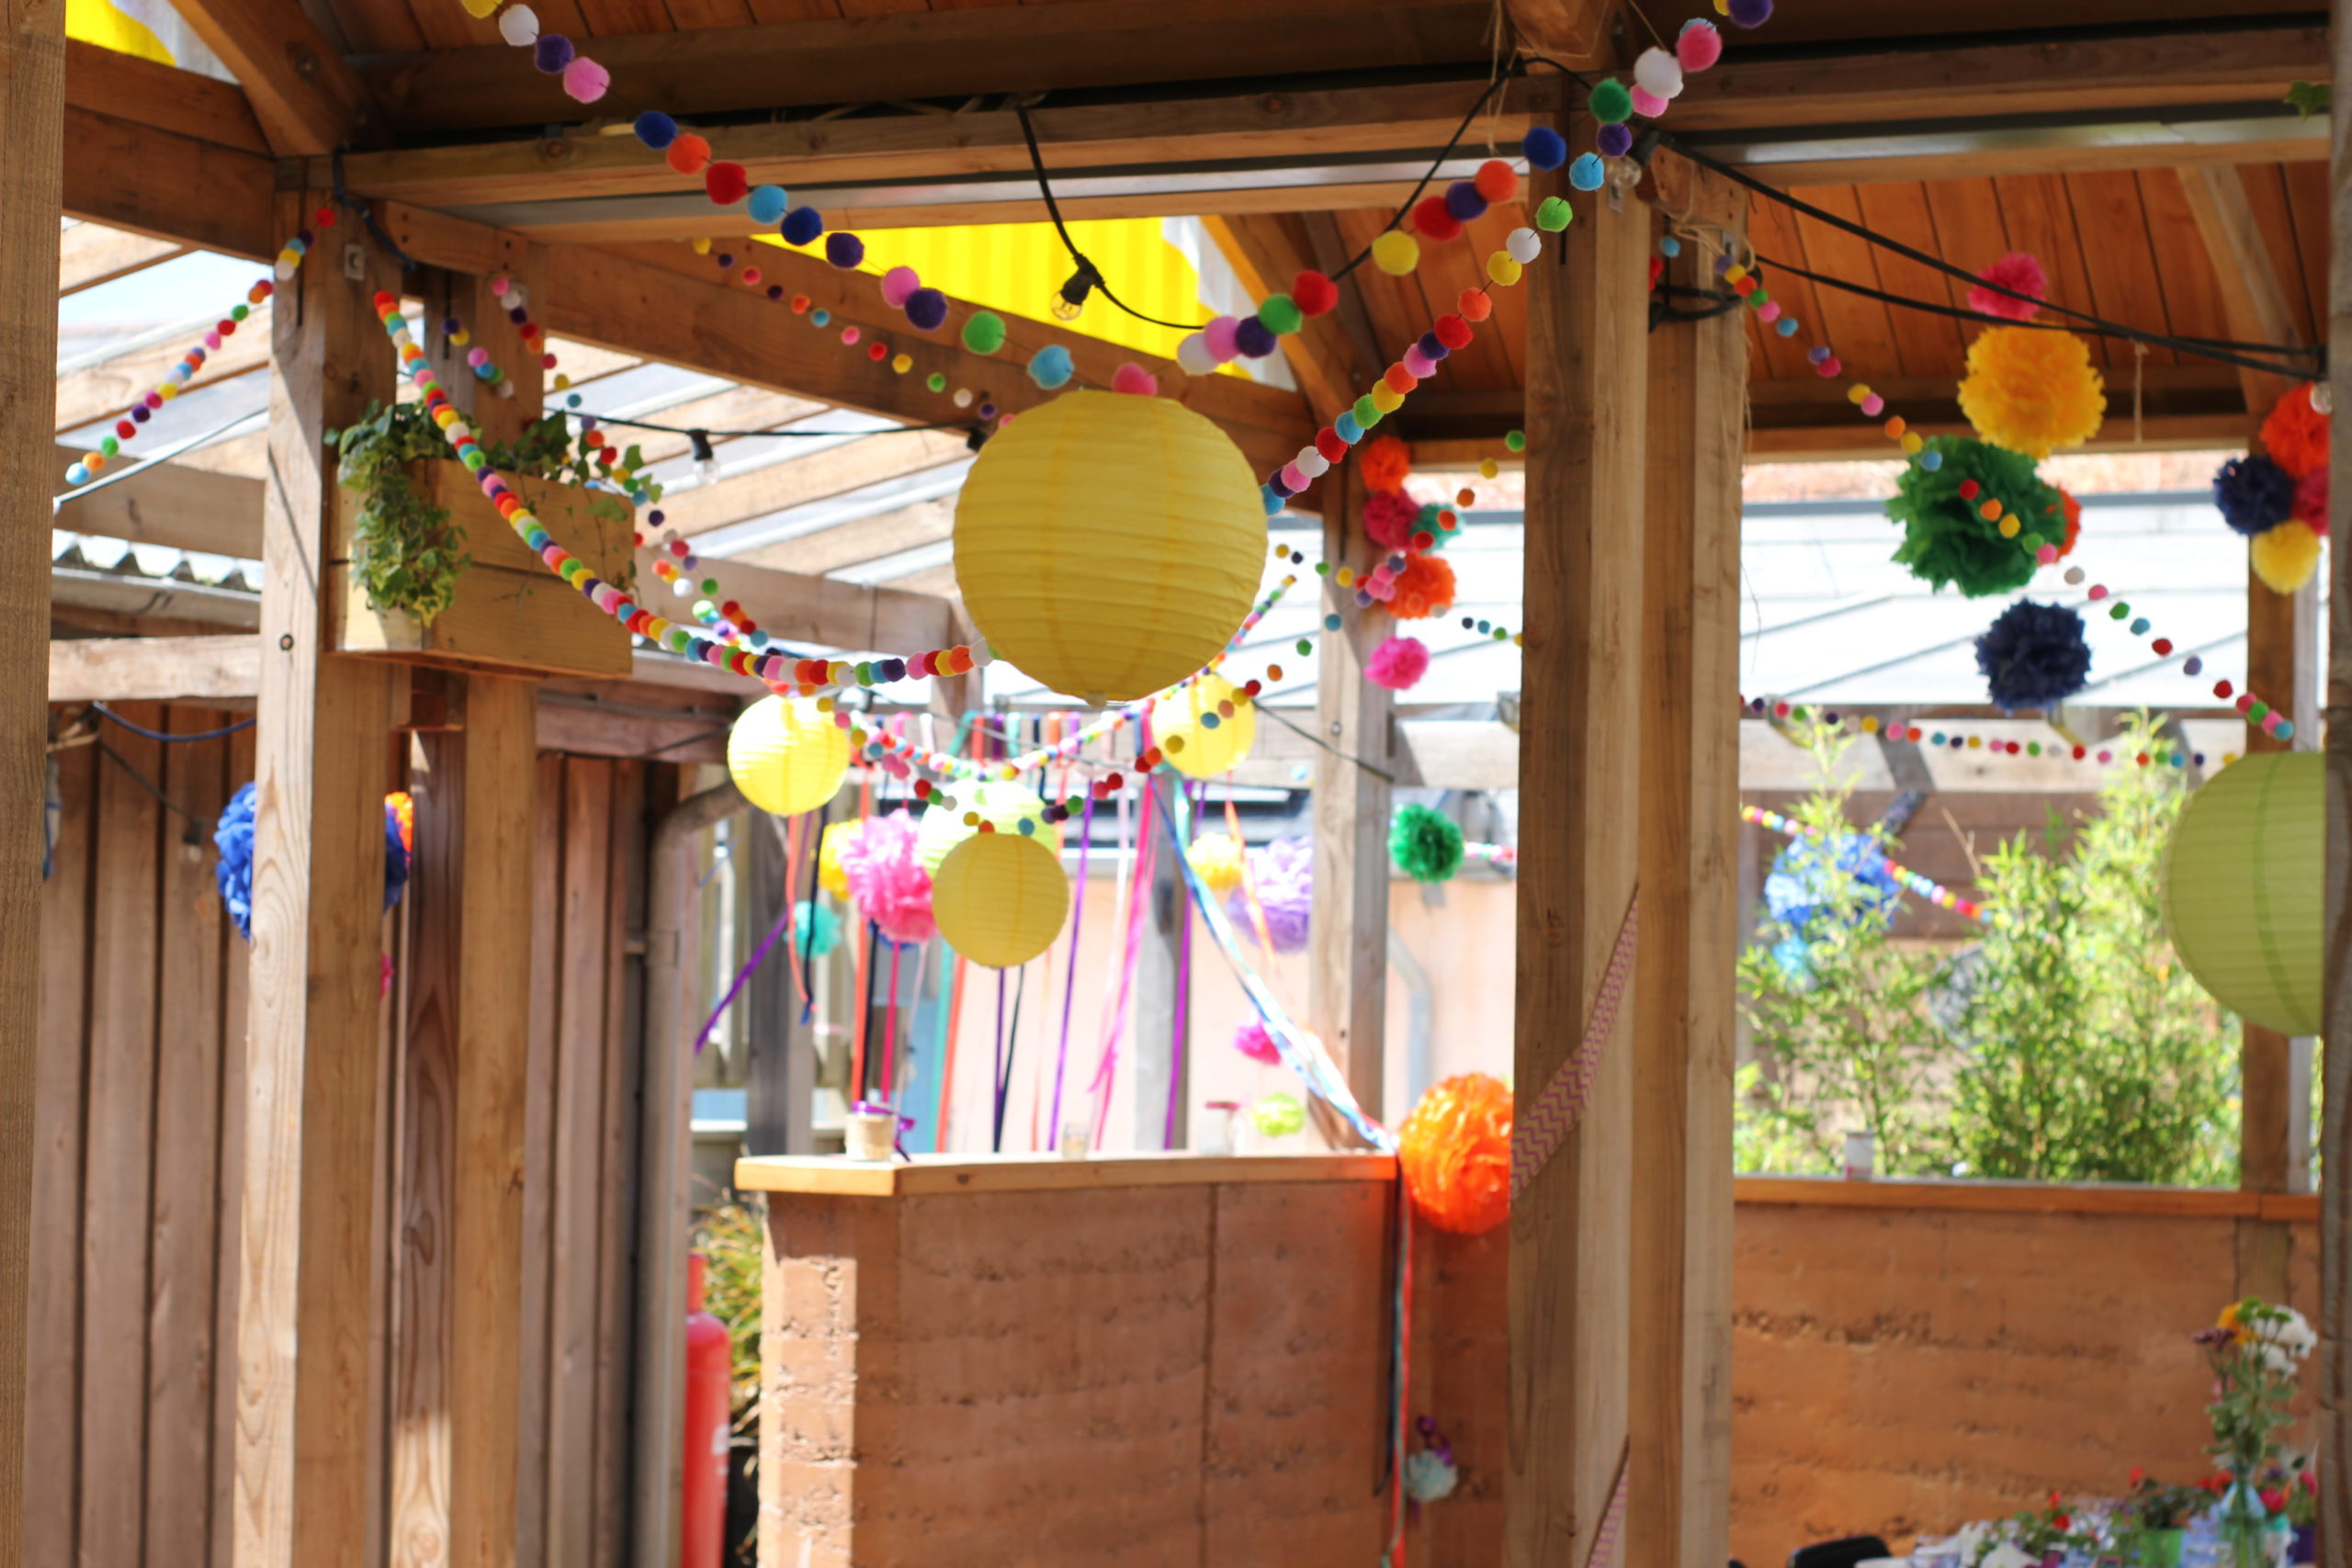 Colourful pom pom garlands and lantern wedding decoration at Eco Park wedding venue